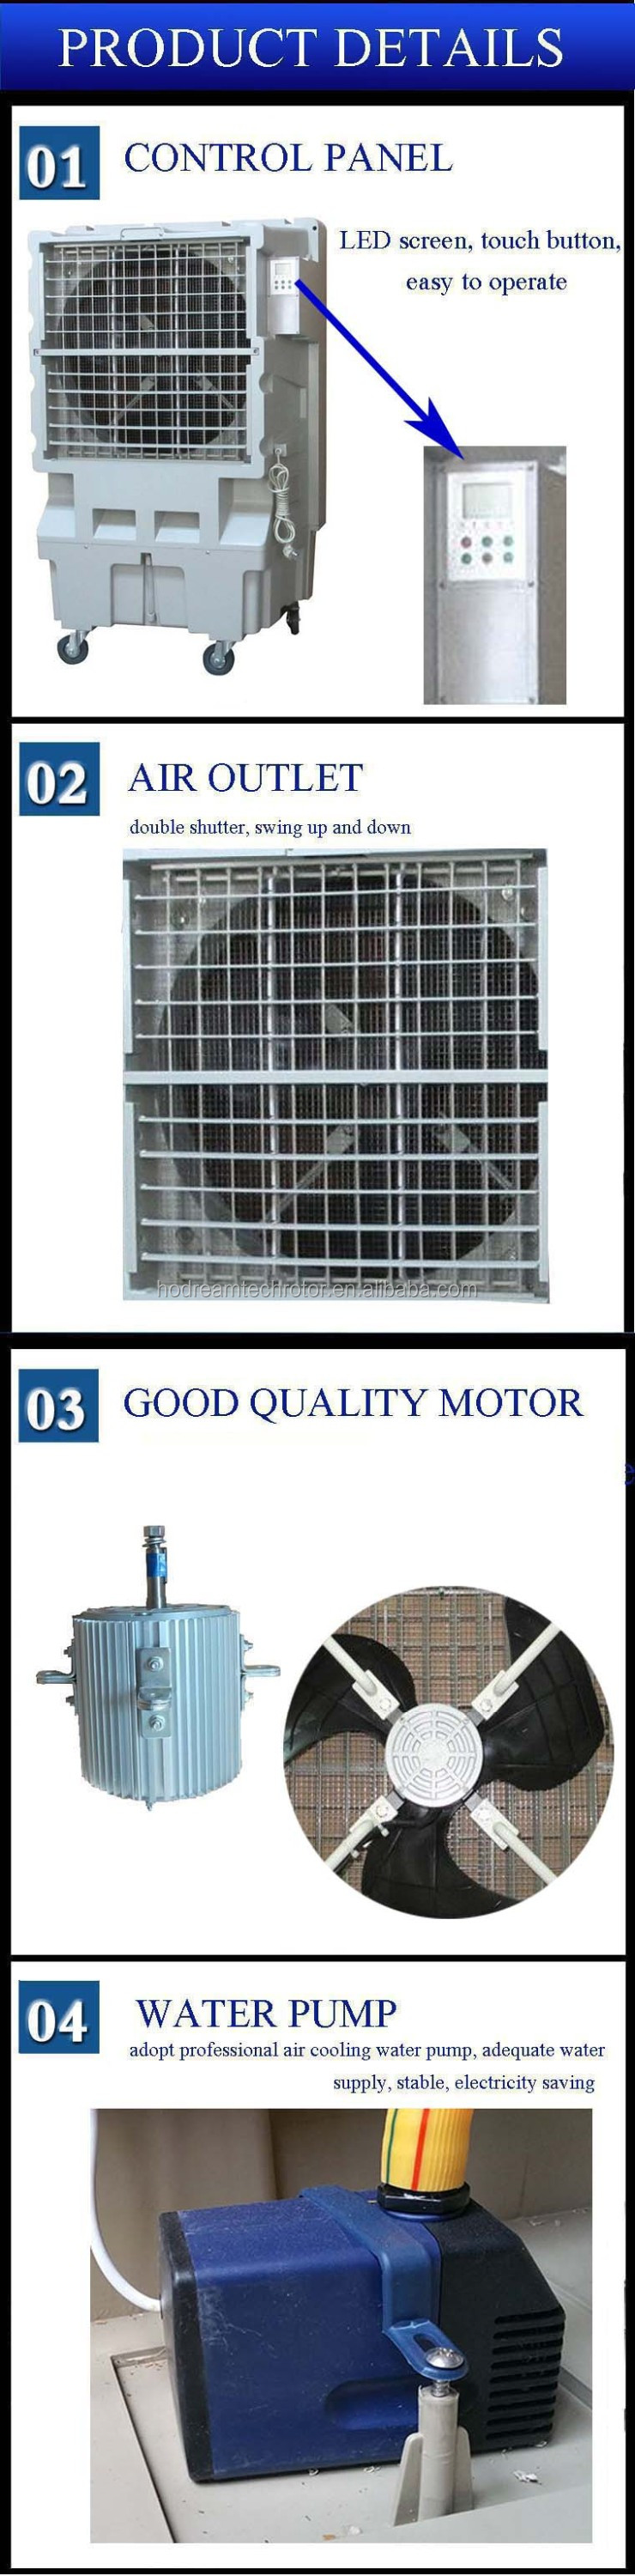 advantages of portable evaporative air cooler.jpg